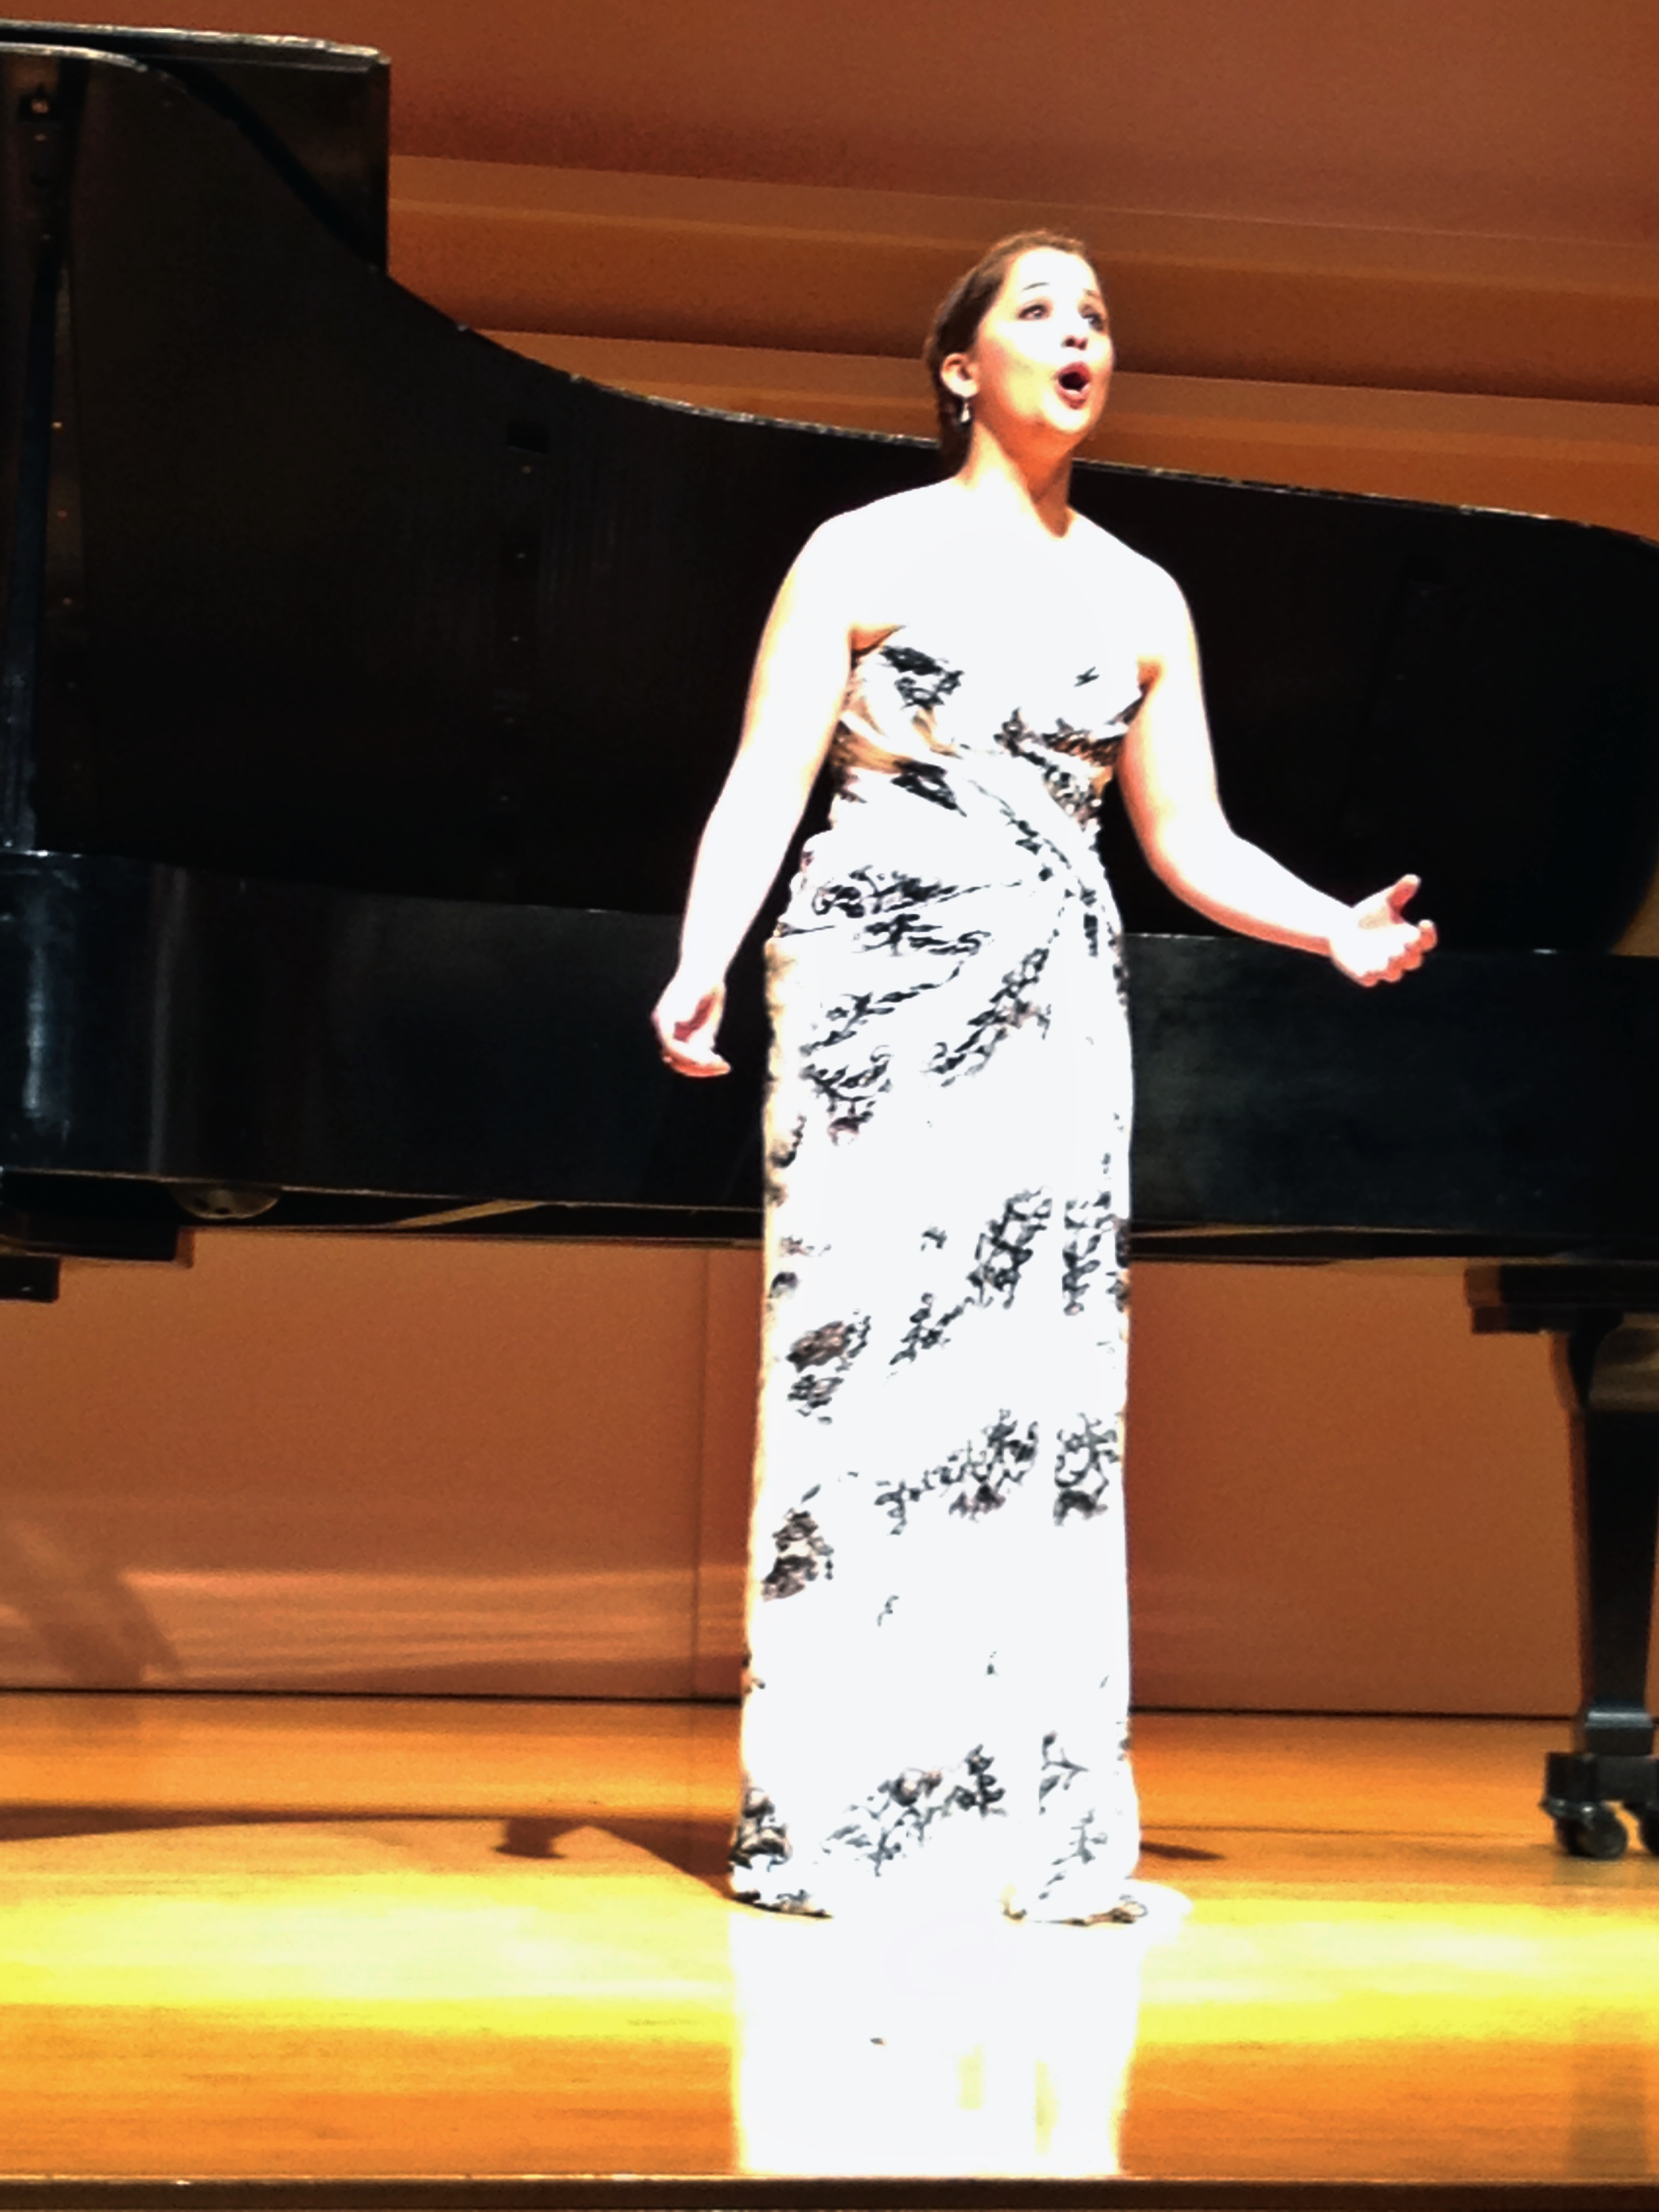 Senior Recital, Rice University 2013